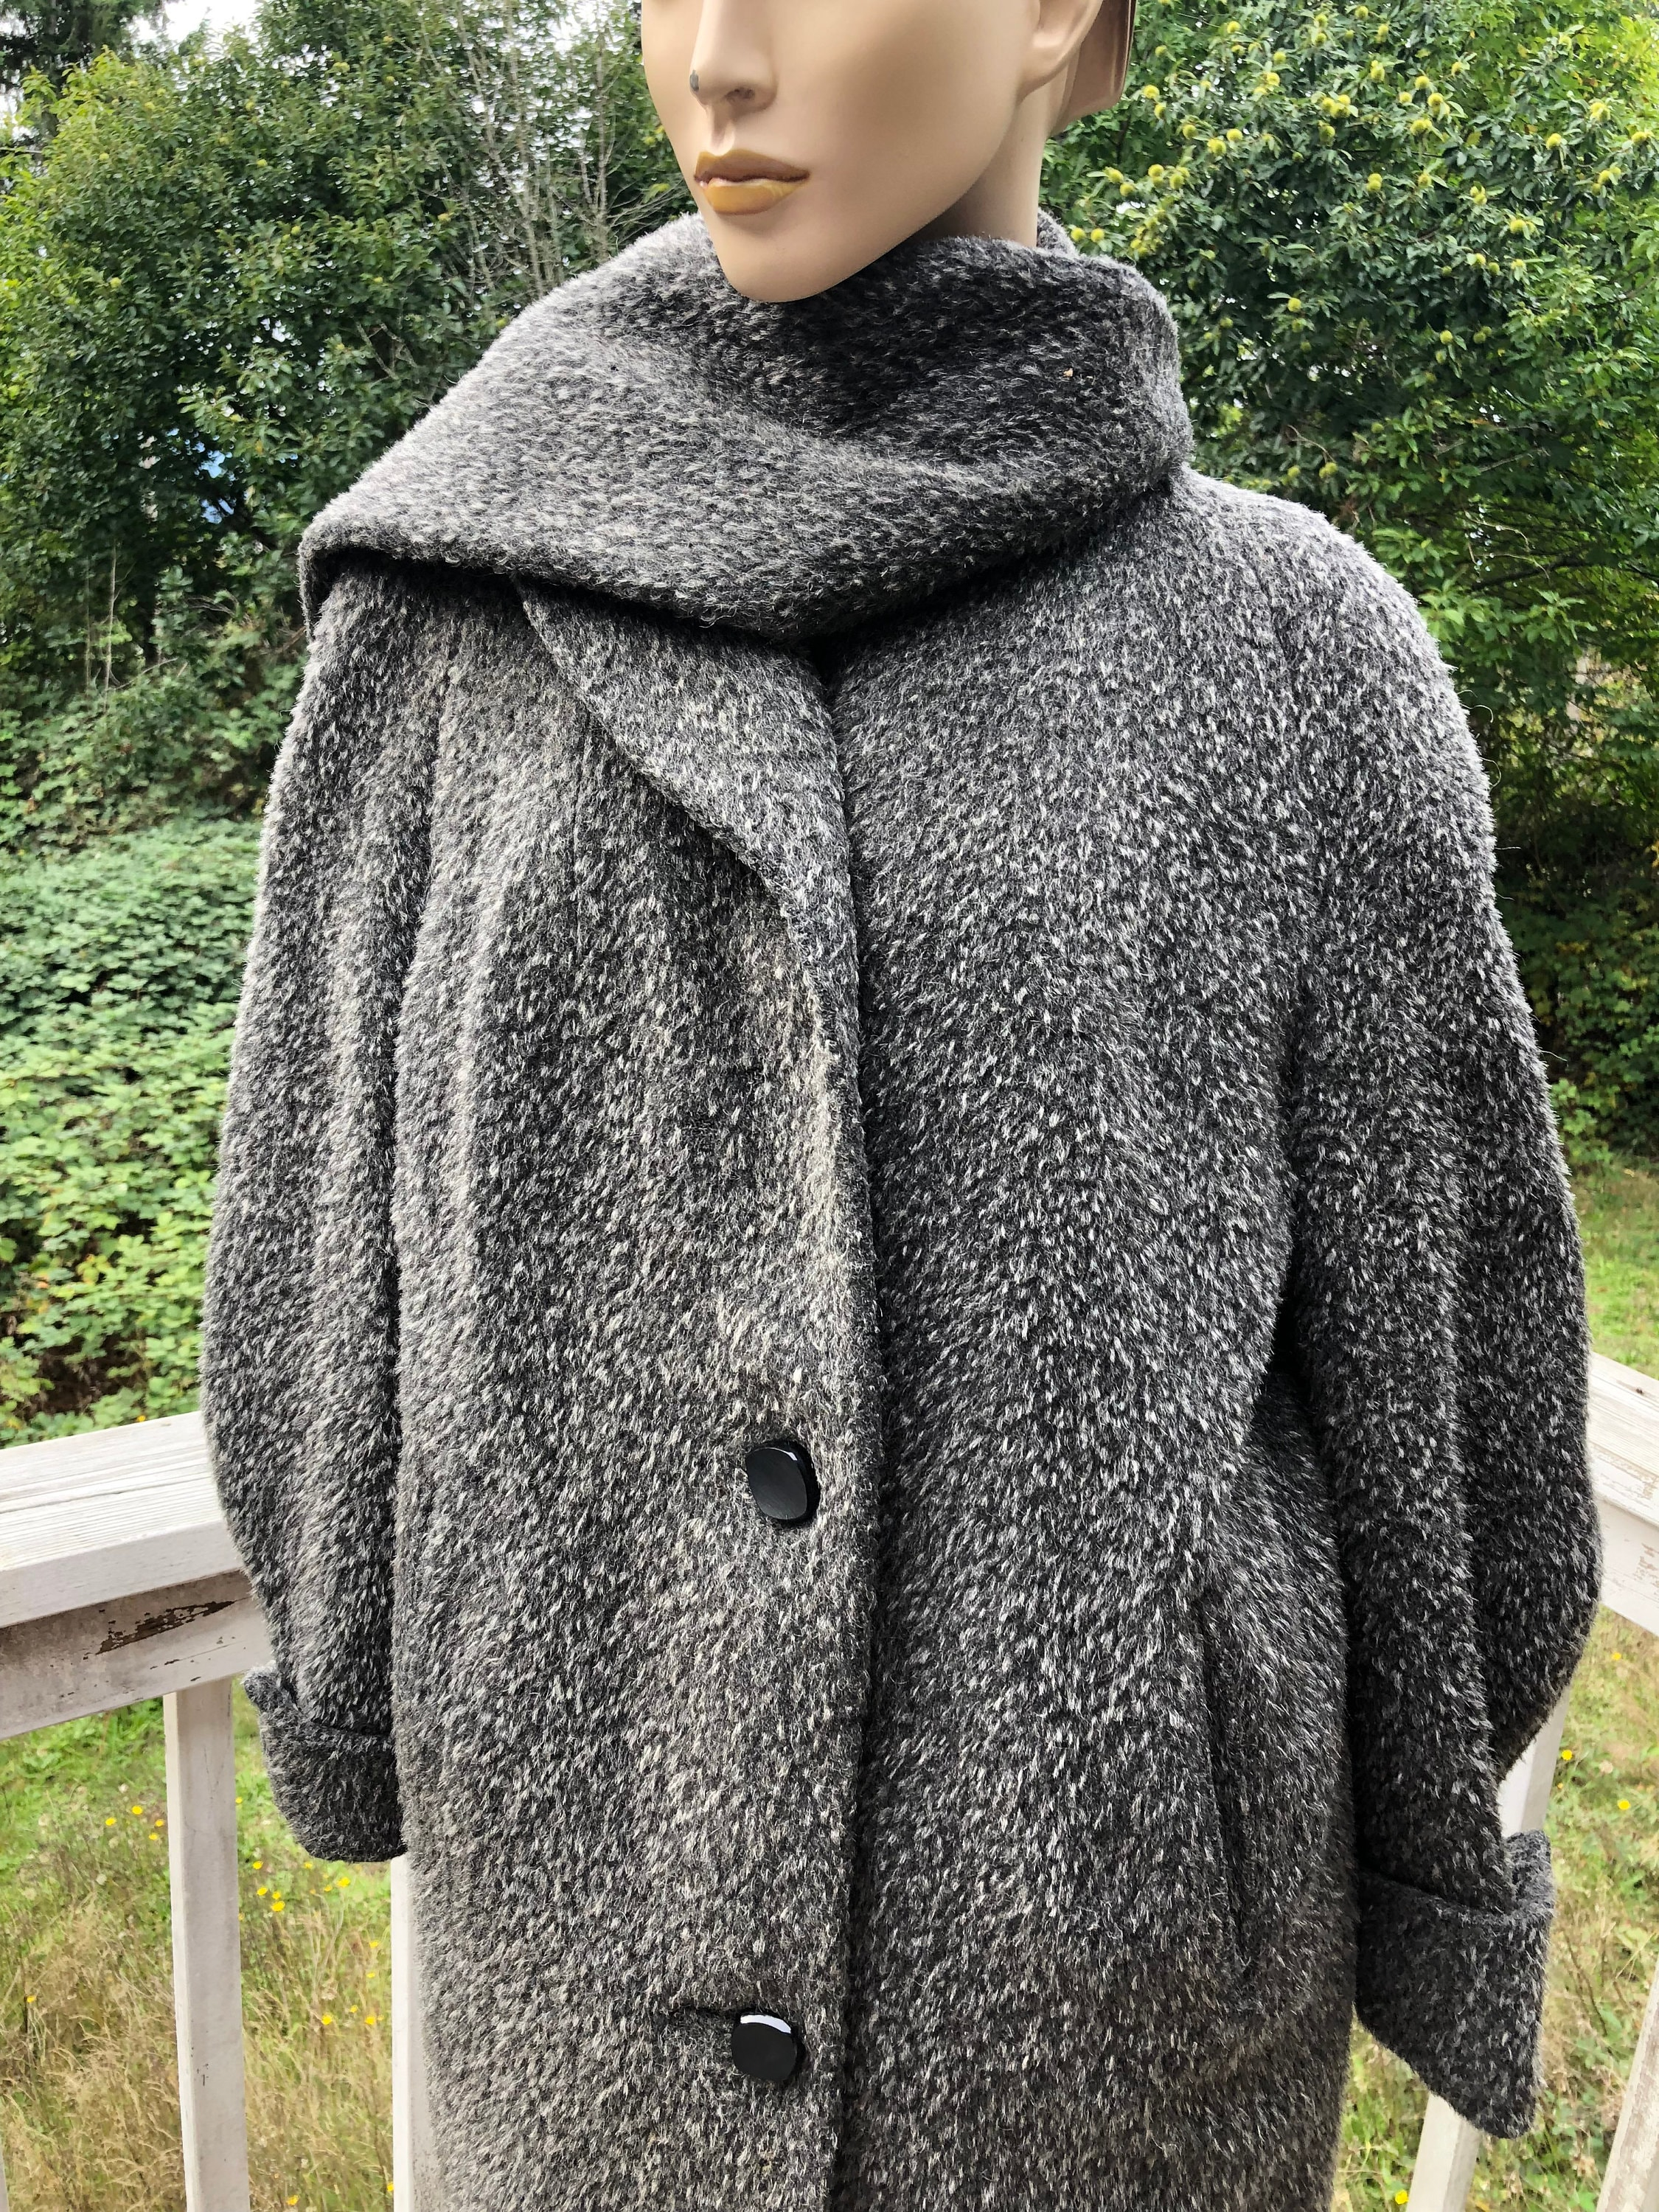 Vintage Scarf Styles -1920s to 1960s Bold 60S Gray Wool Scarf Maxi Coat Jackie O Cottage Chic Xl $0.00 AT vintagedancer.com